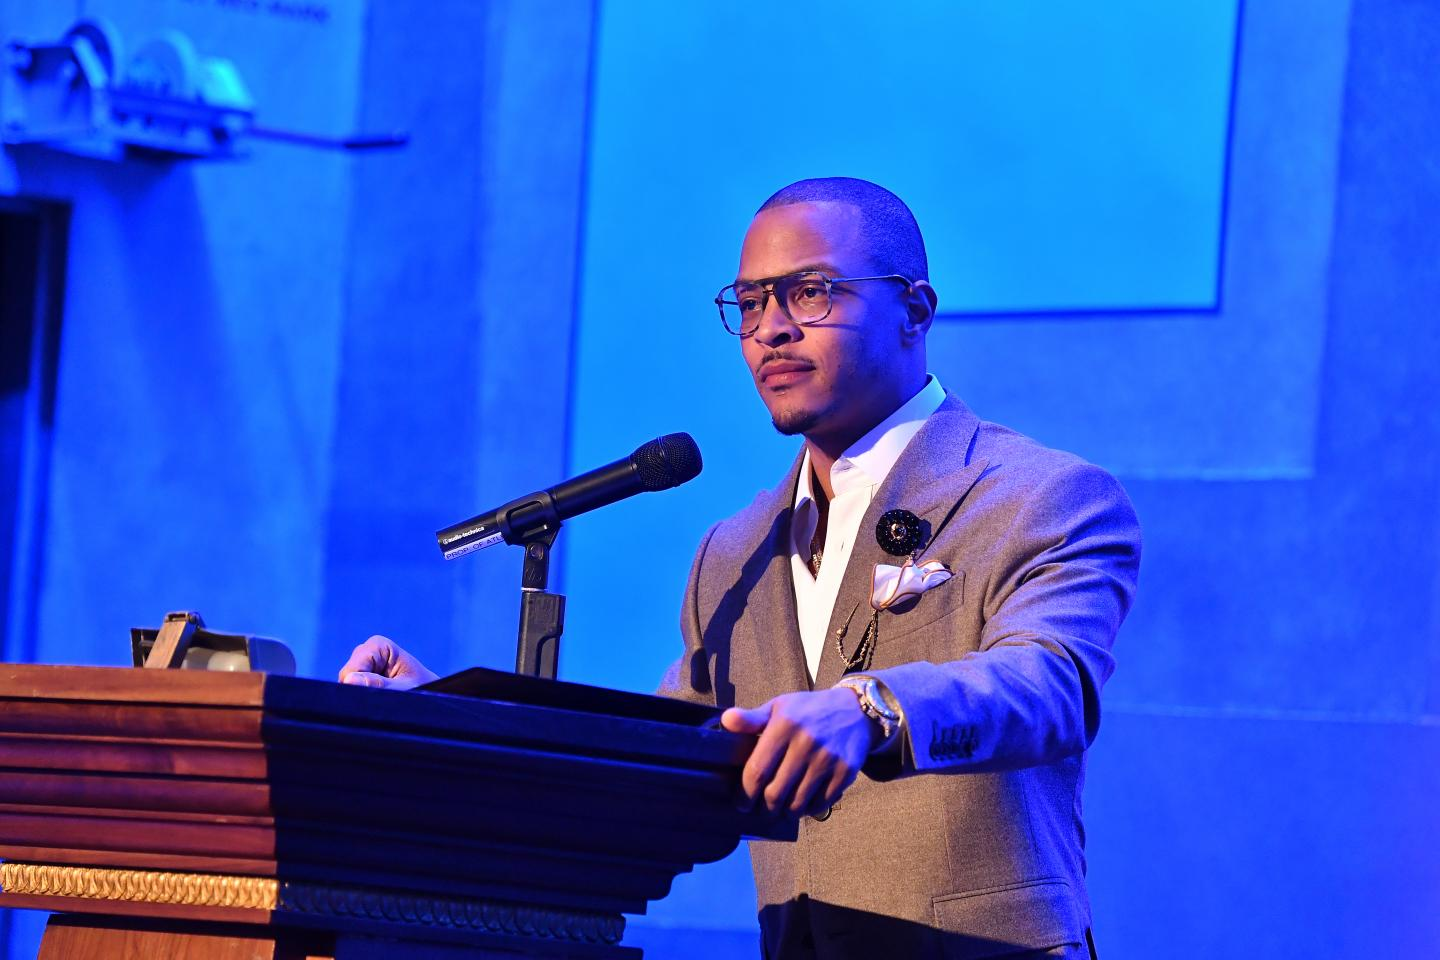 t-i-went-from-breaking-laws-to-changing-them-check-out-his-latest-update-on-investing-in-black-communities